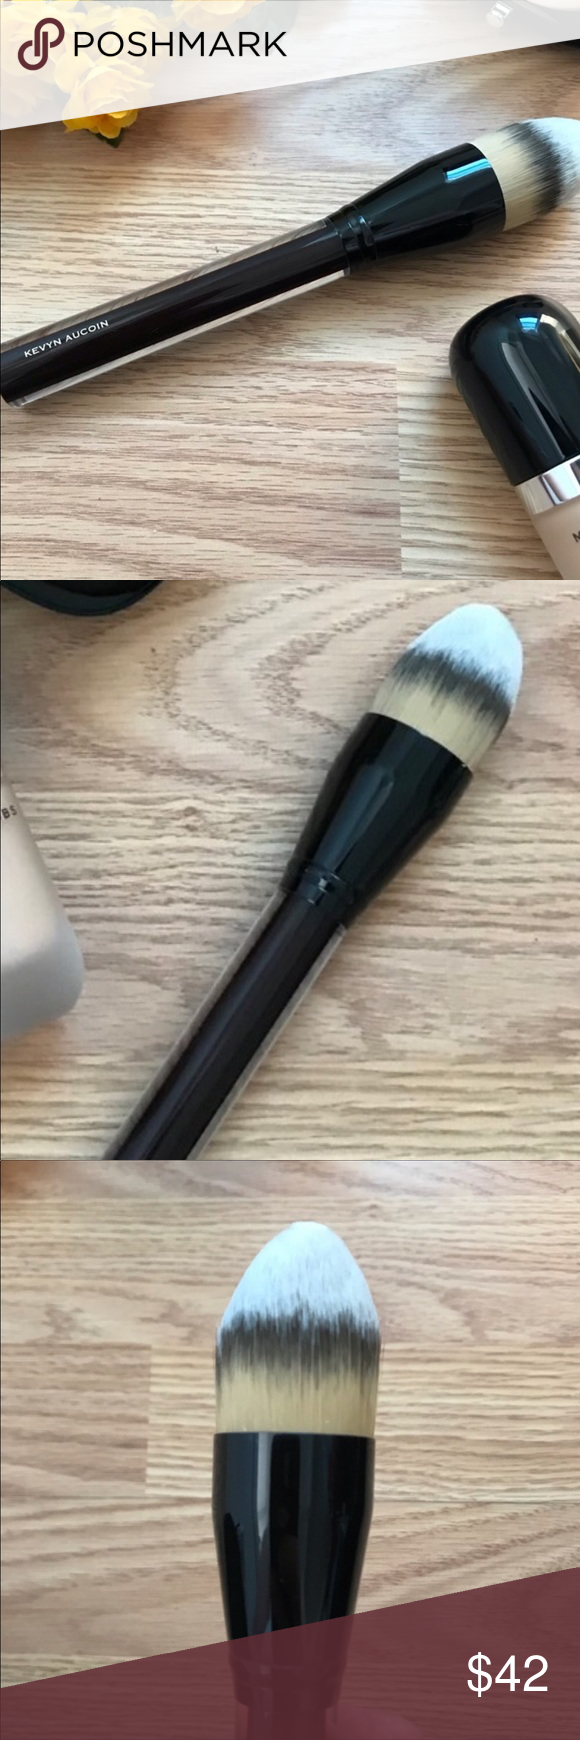 KEVIN AUCOIN THE FOUNDATION BRUSH This brush has been used